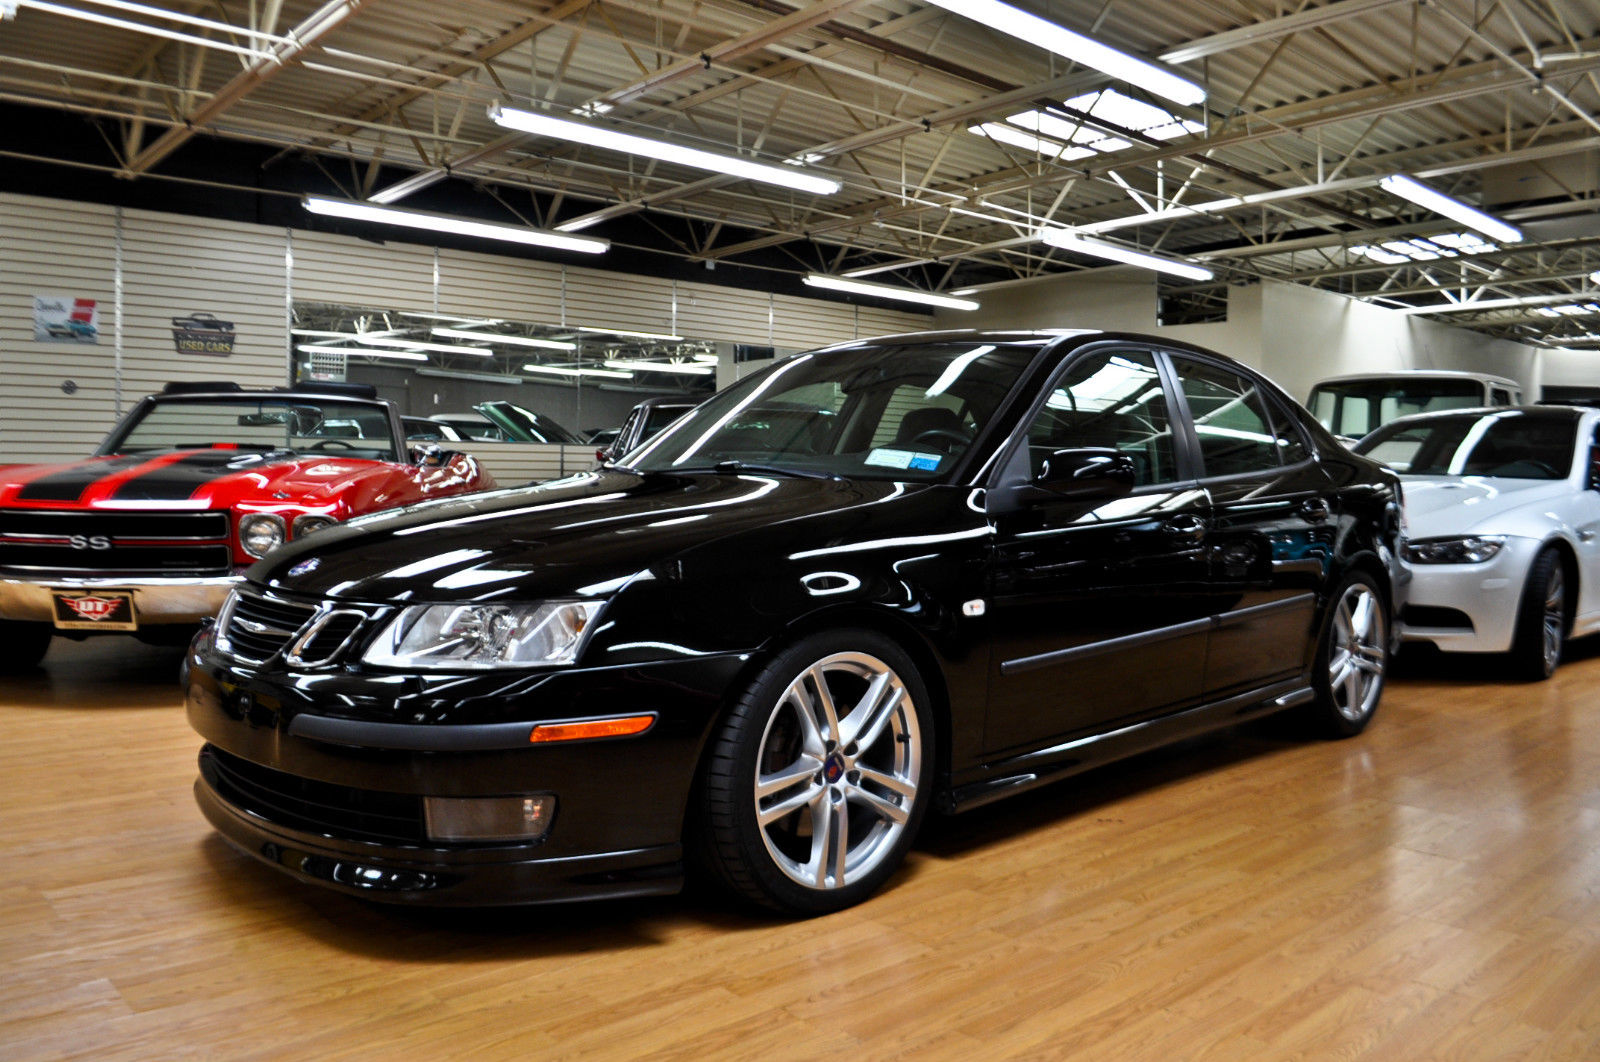 Beautiful Hirsch 2007 Saab 9-3 Aero on eBay